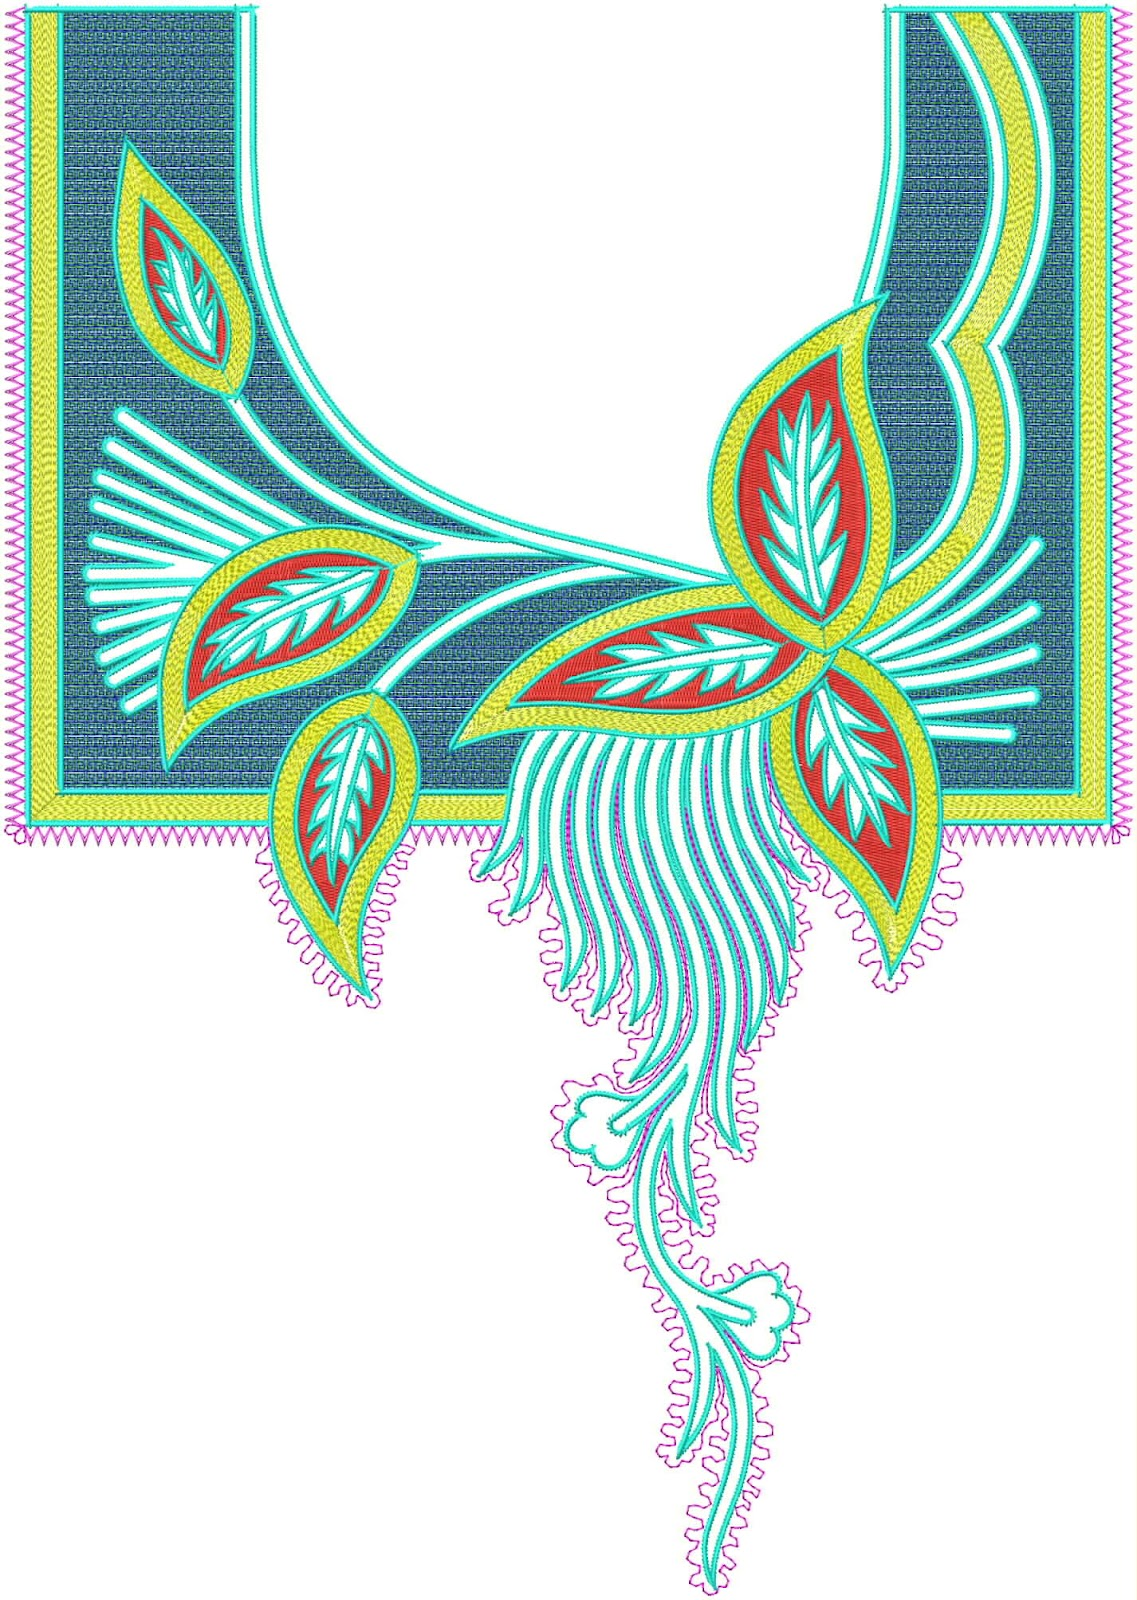 Blouse Embroidery Designs Free Download